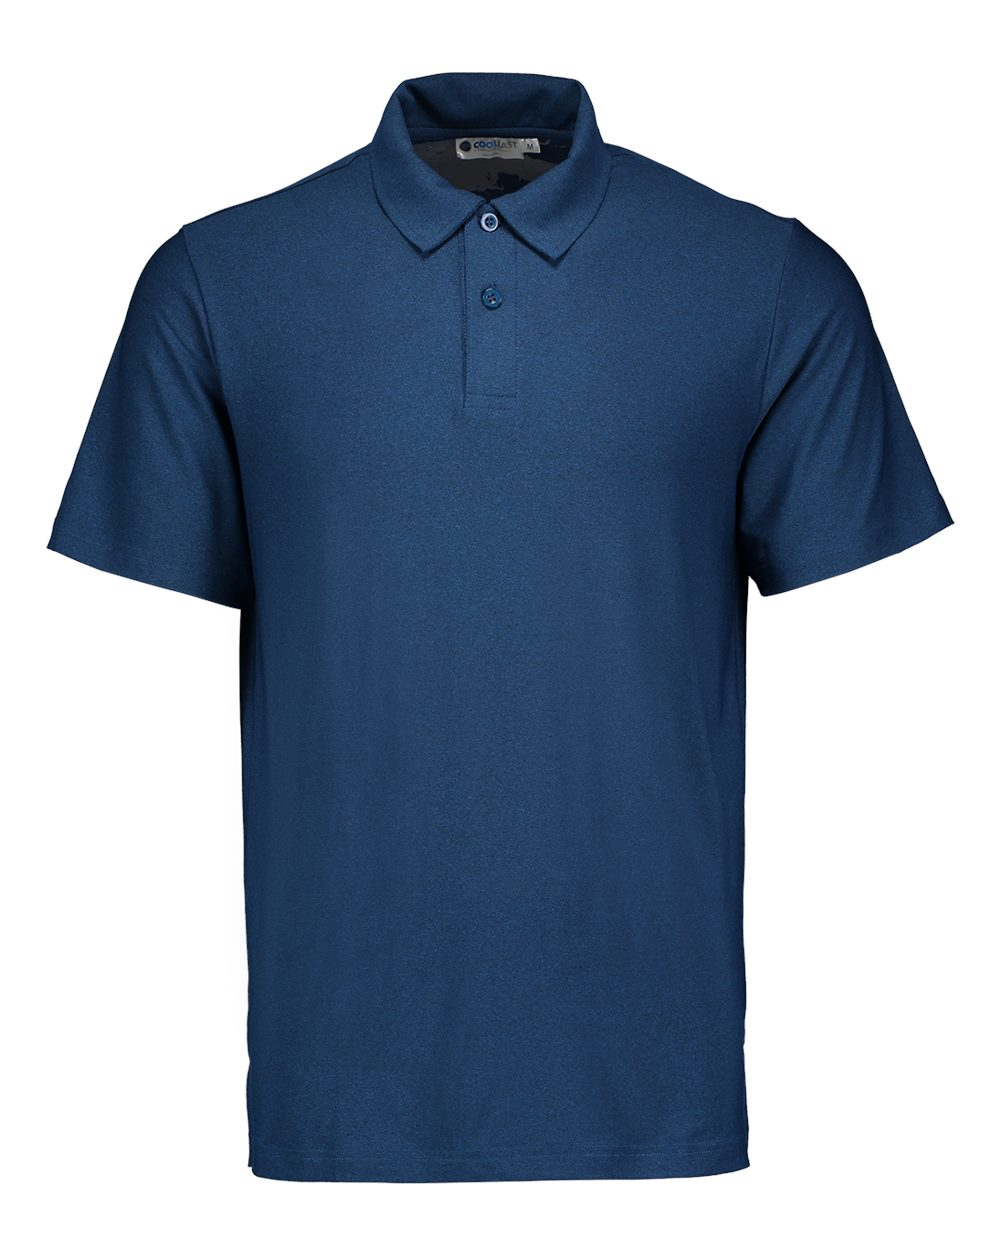 Cool Last Heathered Lux Sport Shirt-Weatherproof